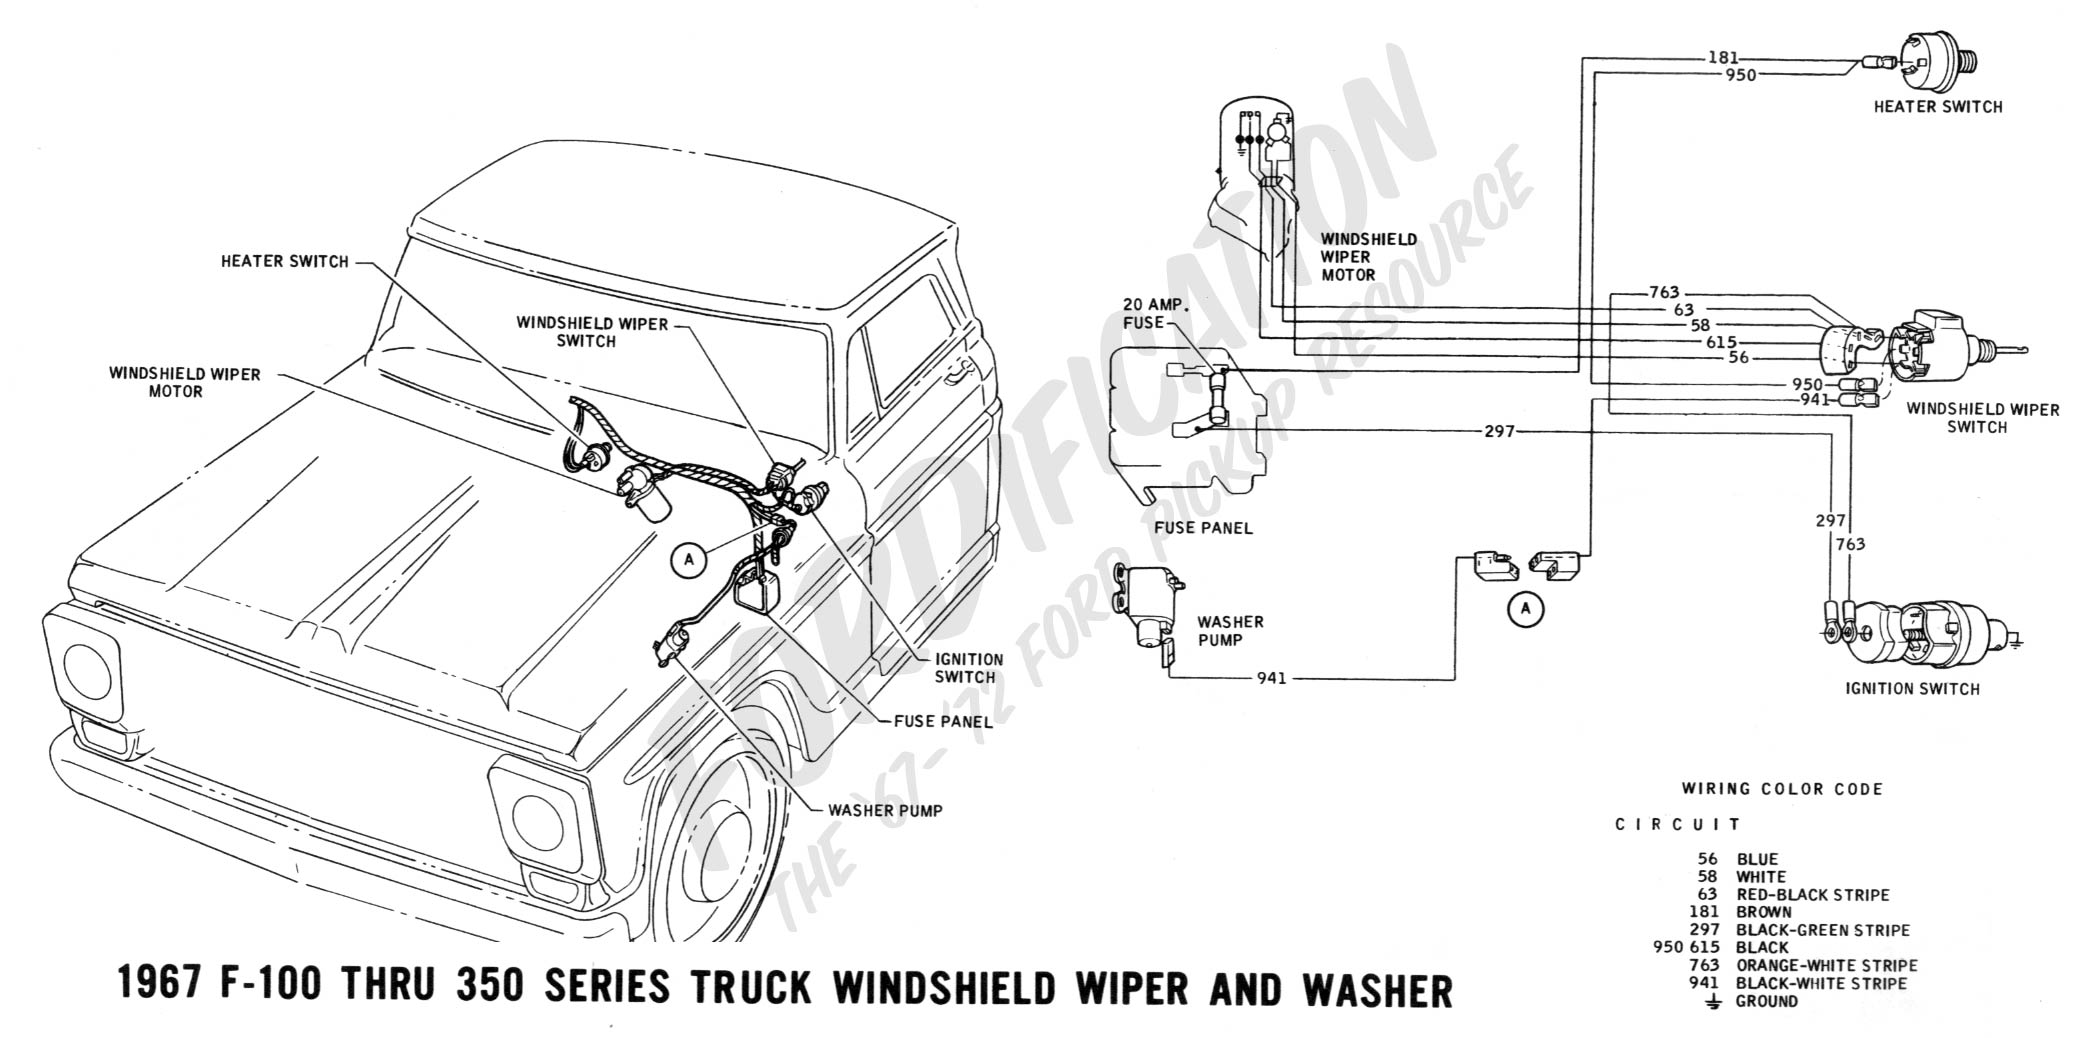 wiring 1967wipers ford truck technical drawings and schematics section h wiring 1999 ford explorer rear wiper wiring diagram at creativeand.co